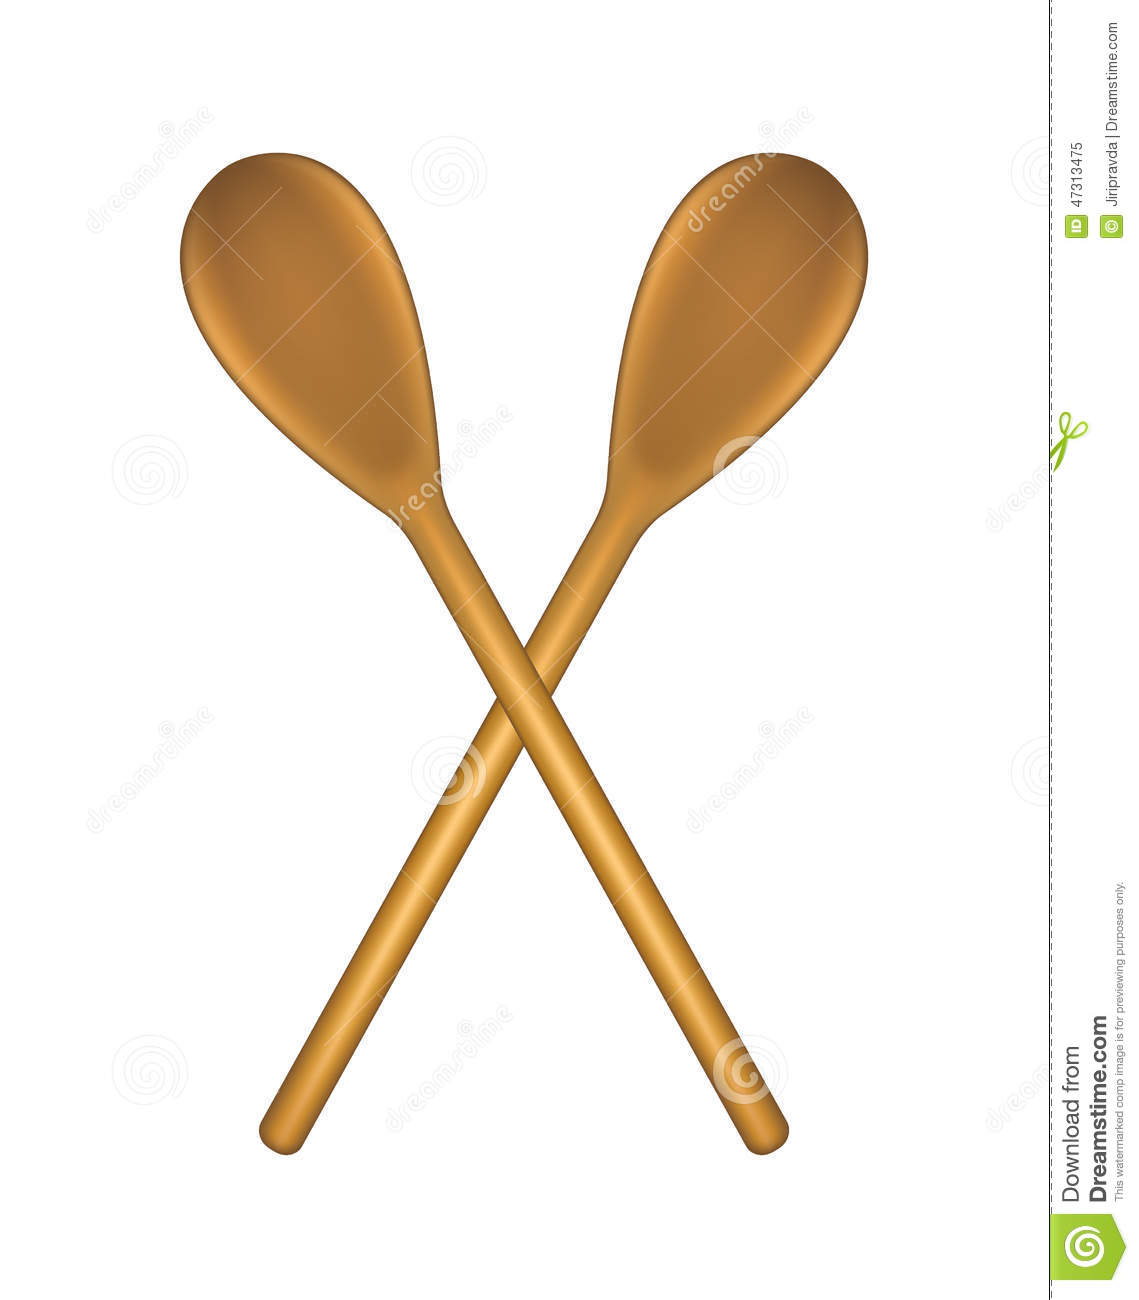 Two Crossed Wooden Spoons Stock Vector - Image: 47313475